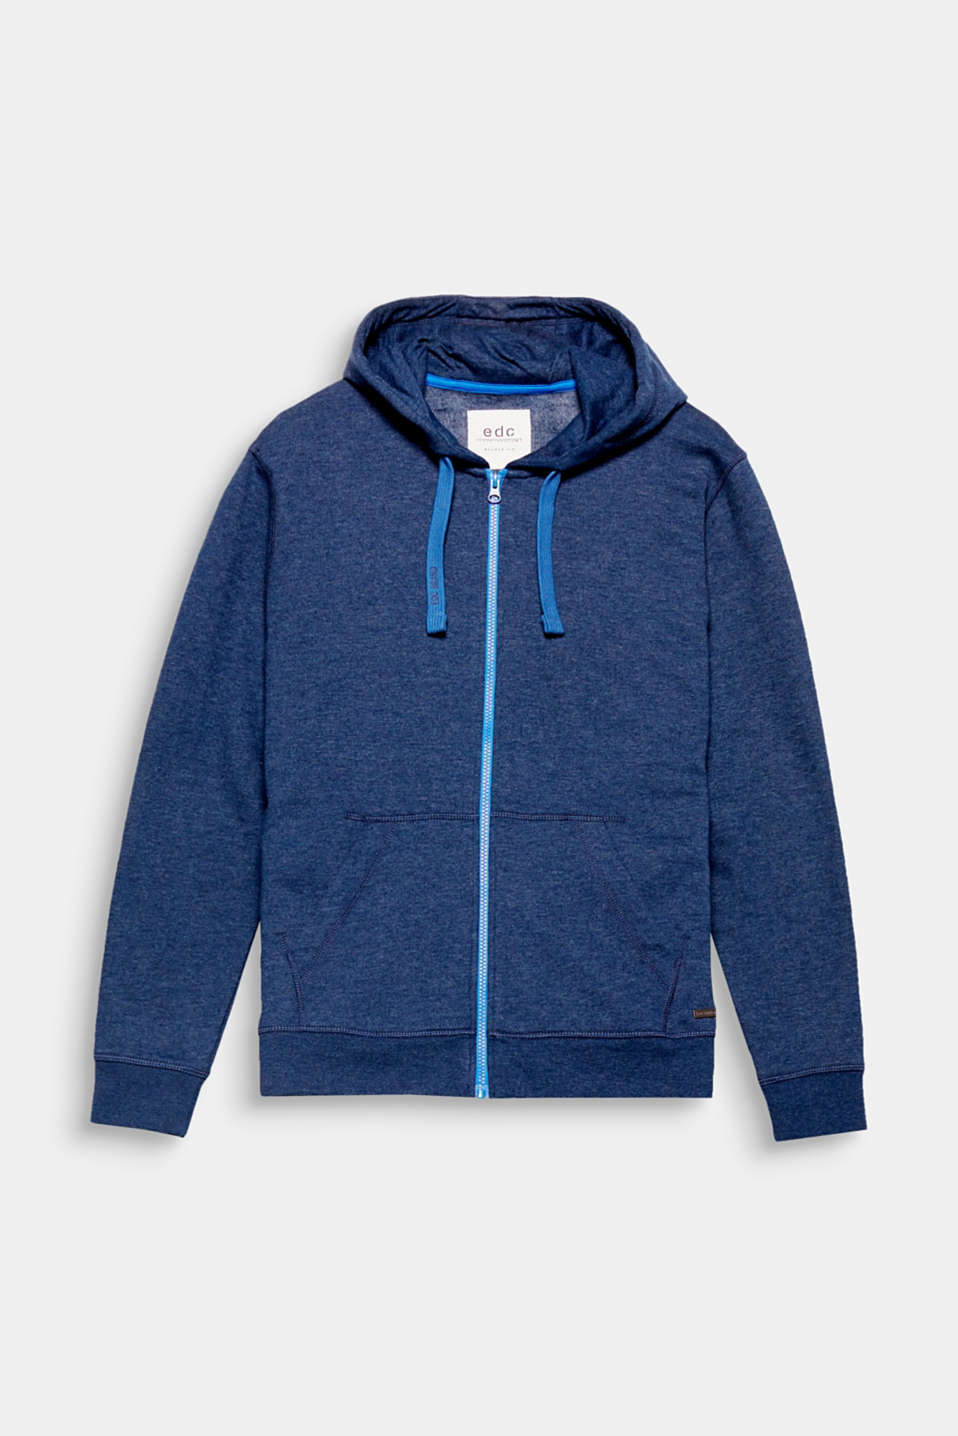 Vibrant accents give this hoodie an exciting look.